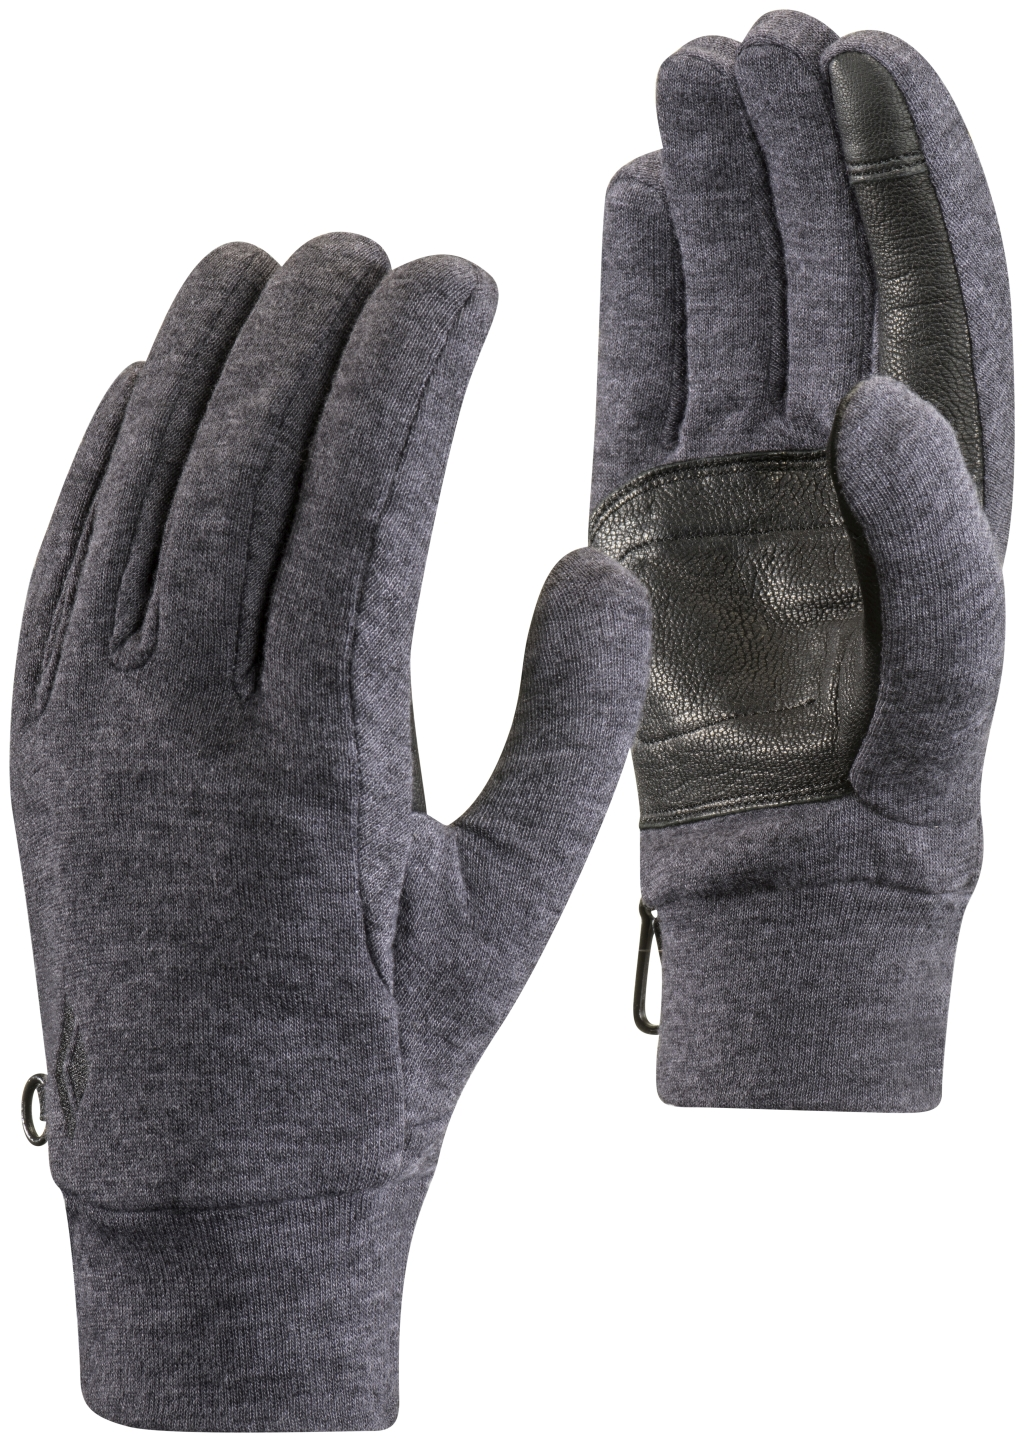 Black Diamond Midweight Wooltech Gloves Slate-30